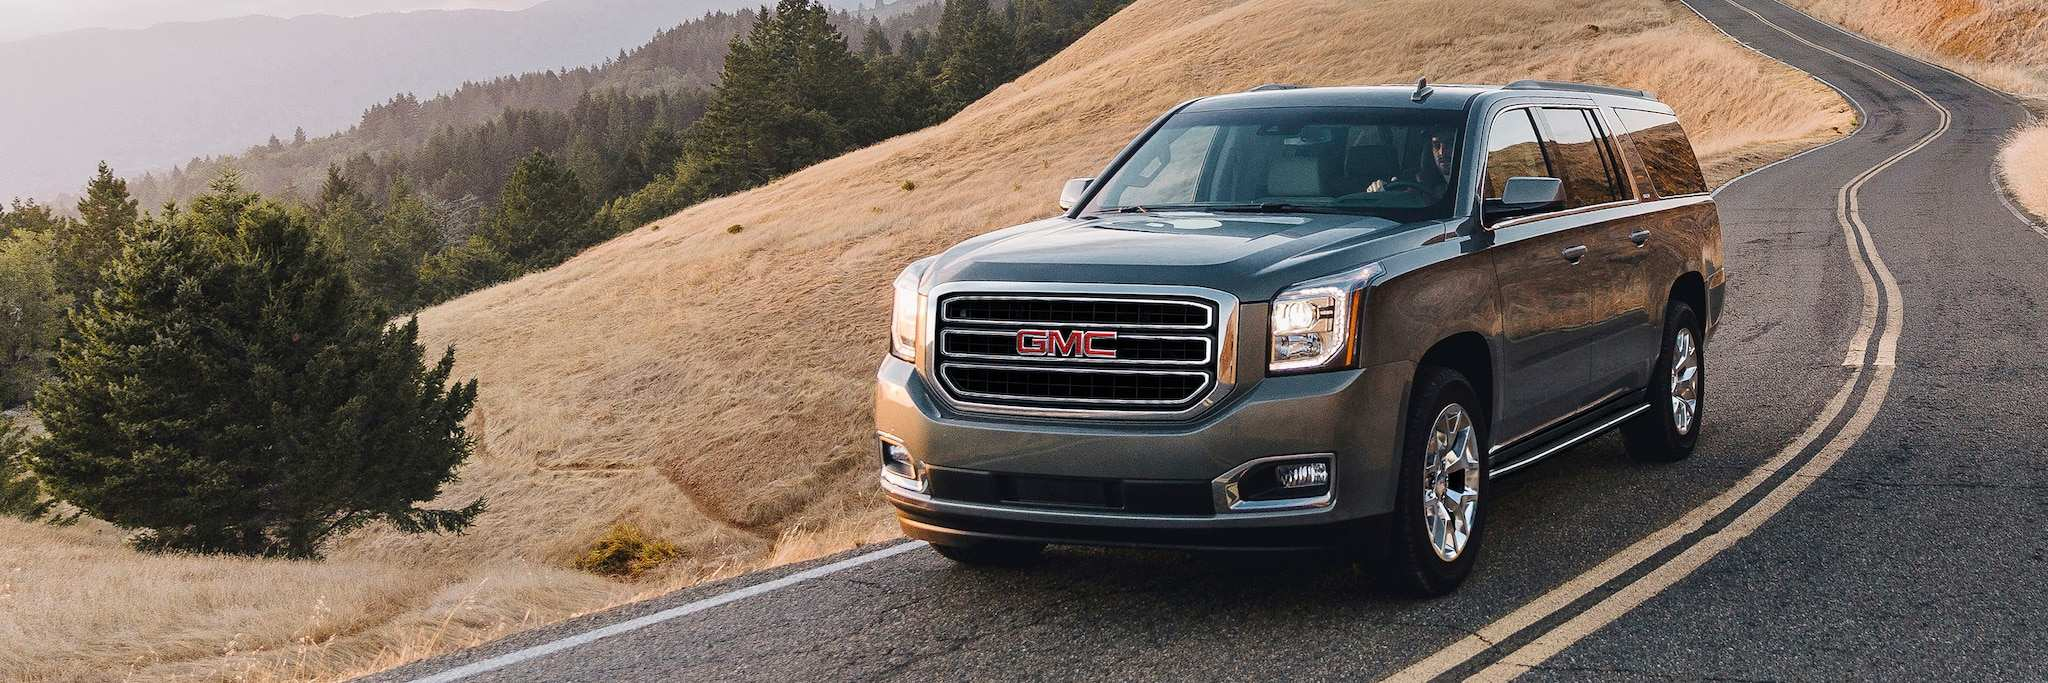 80 The Chevrolet Yukon 2020 Engine with Chevrolet Yukon 2020